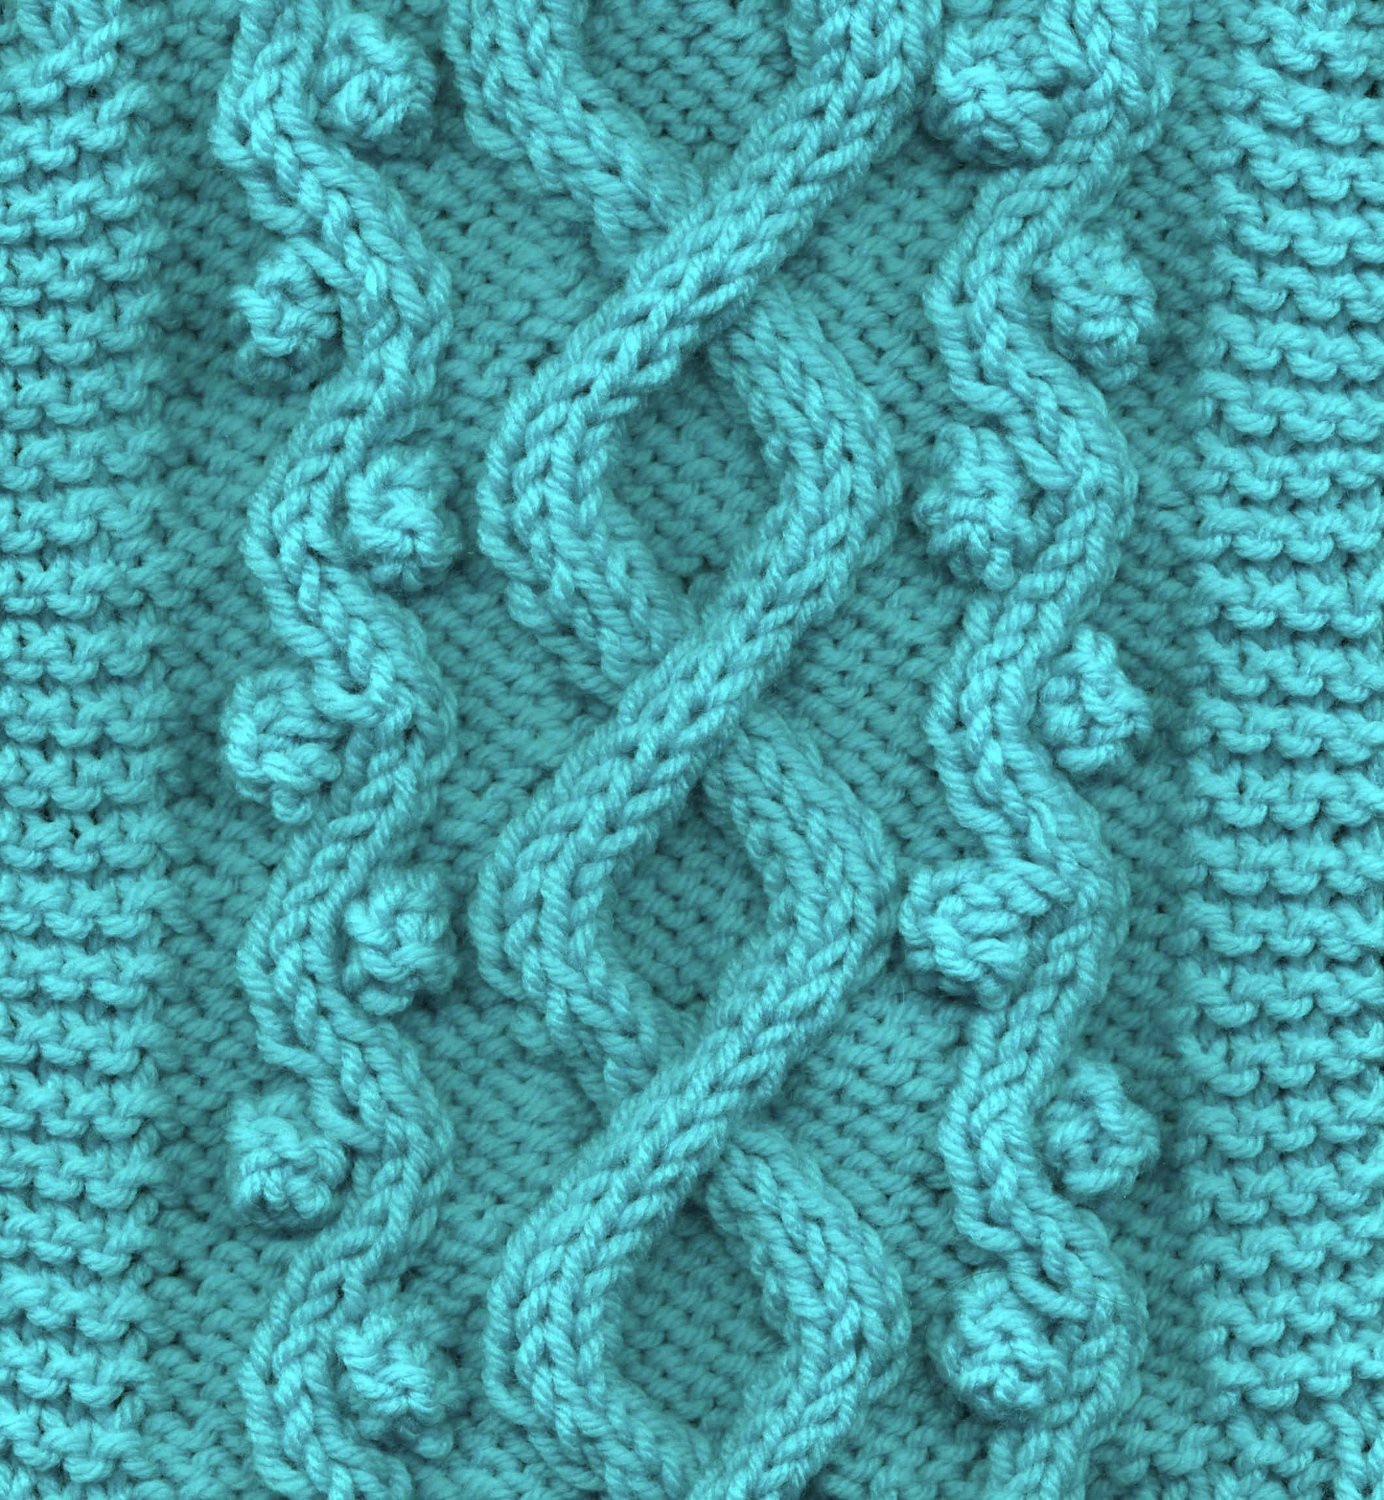 Knitting Patterns Beautiful Knitting Pattern Cable Sweater Free Patterns Of Contemporary 47 Pictures Knitting Patterns